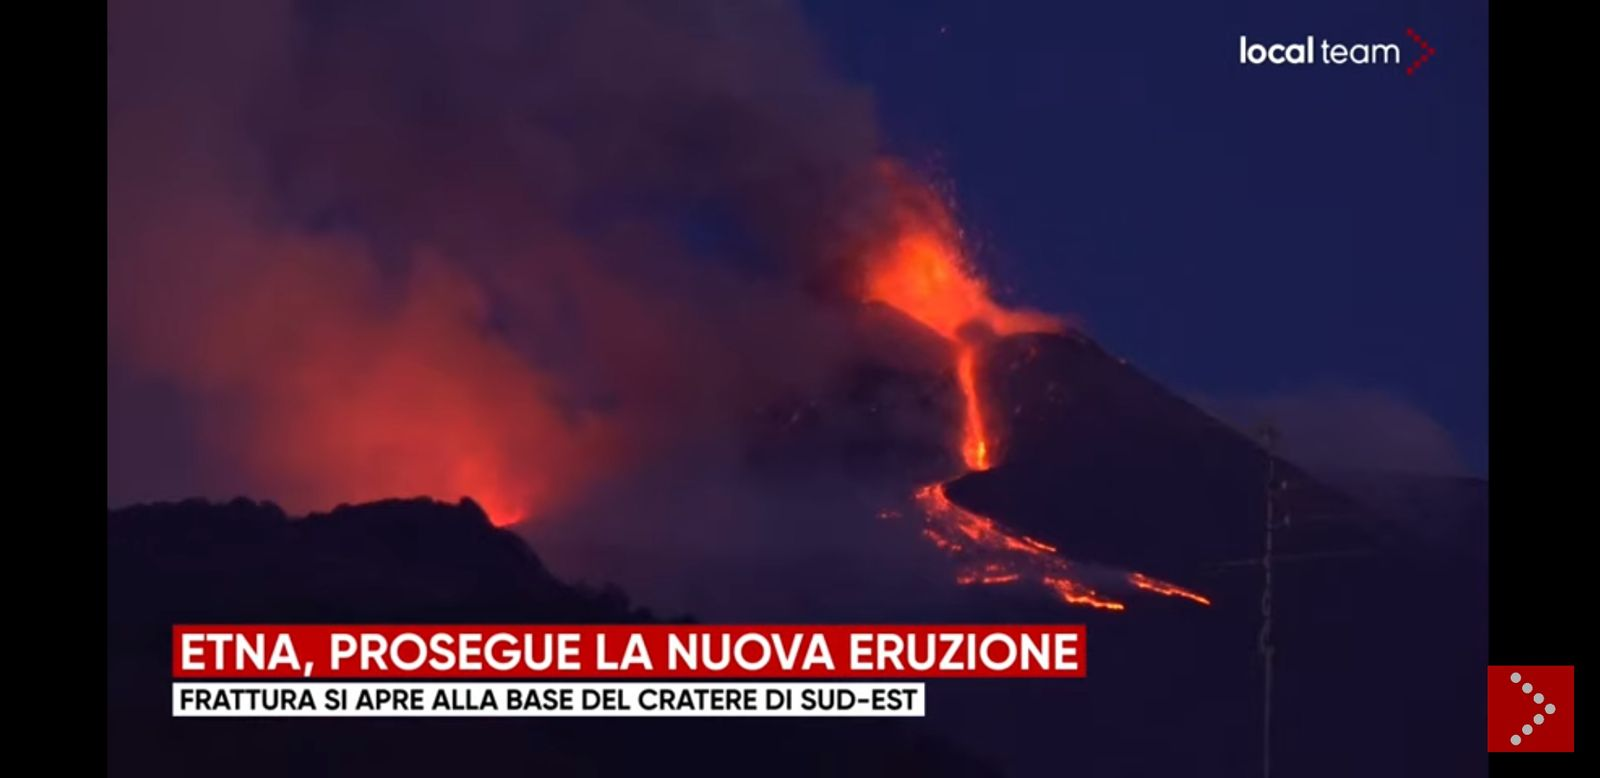 Etna SEC- ouverture d'une fracture à la base du cratère sud-est  - photo Local Team